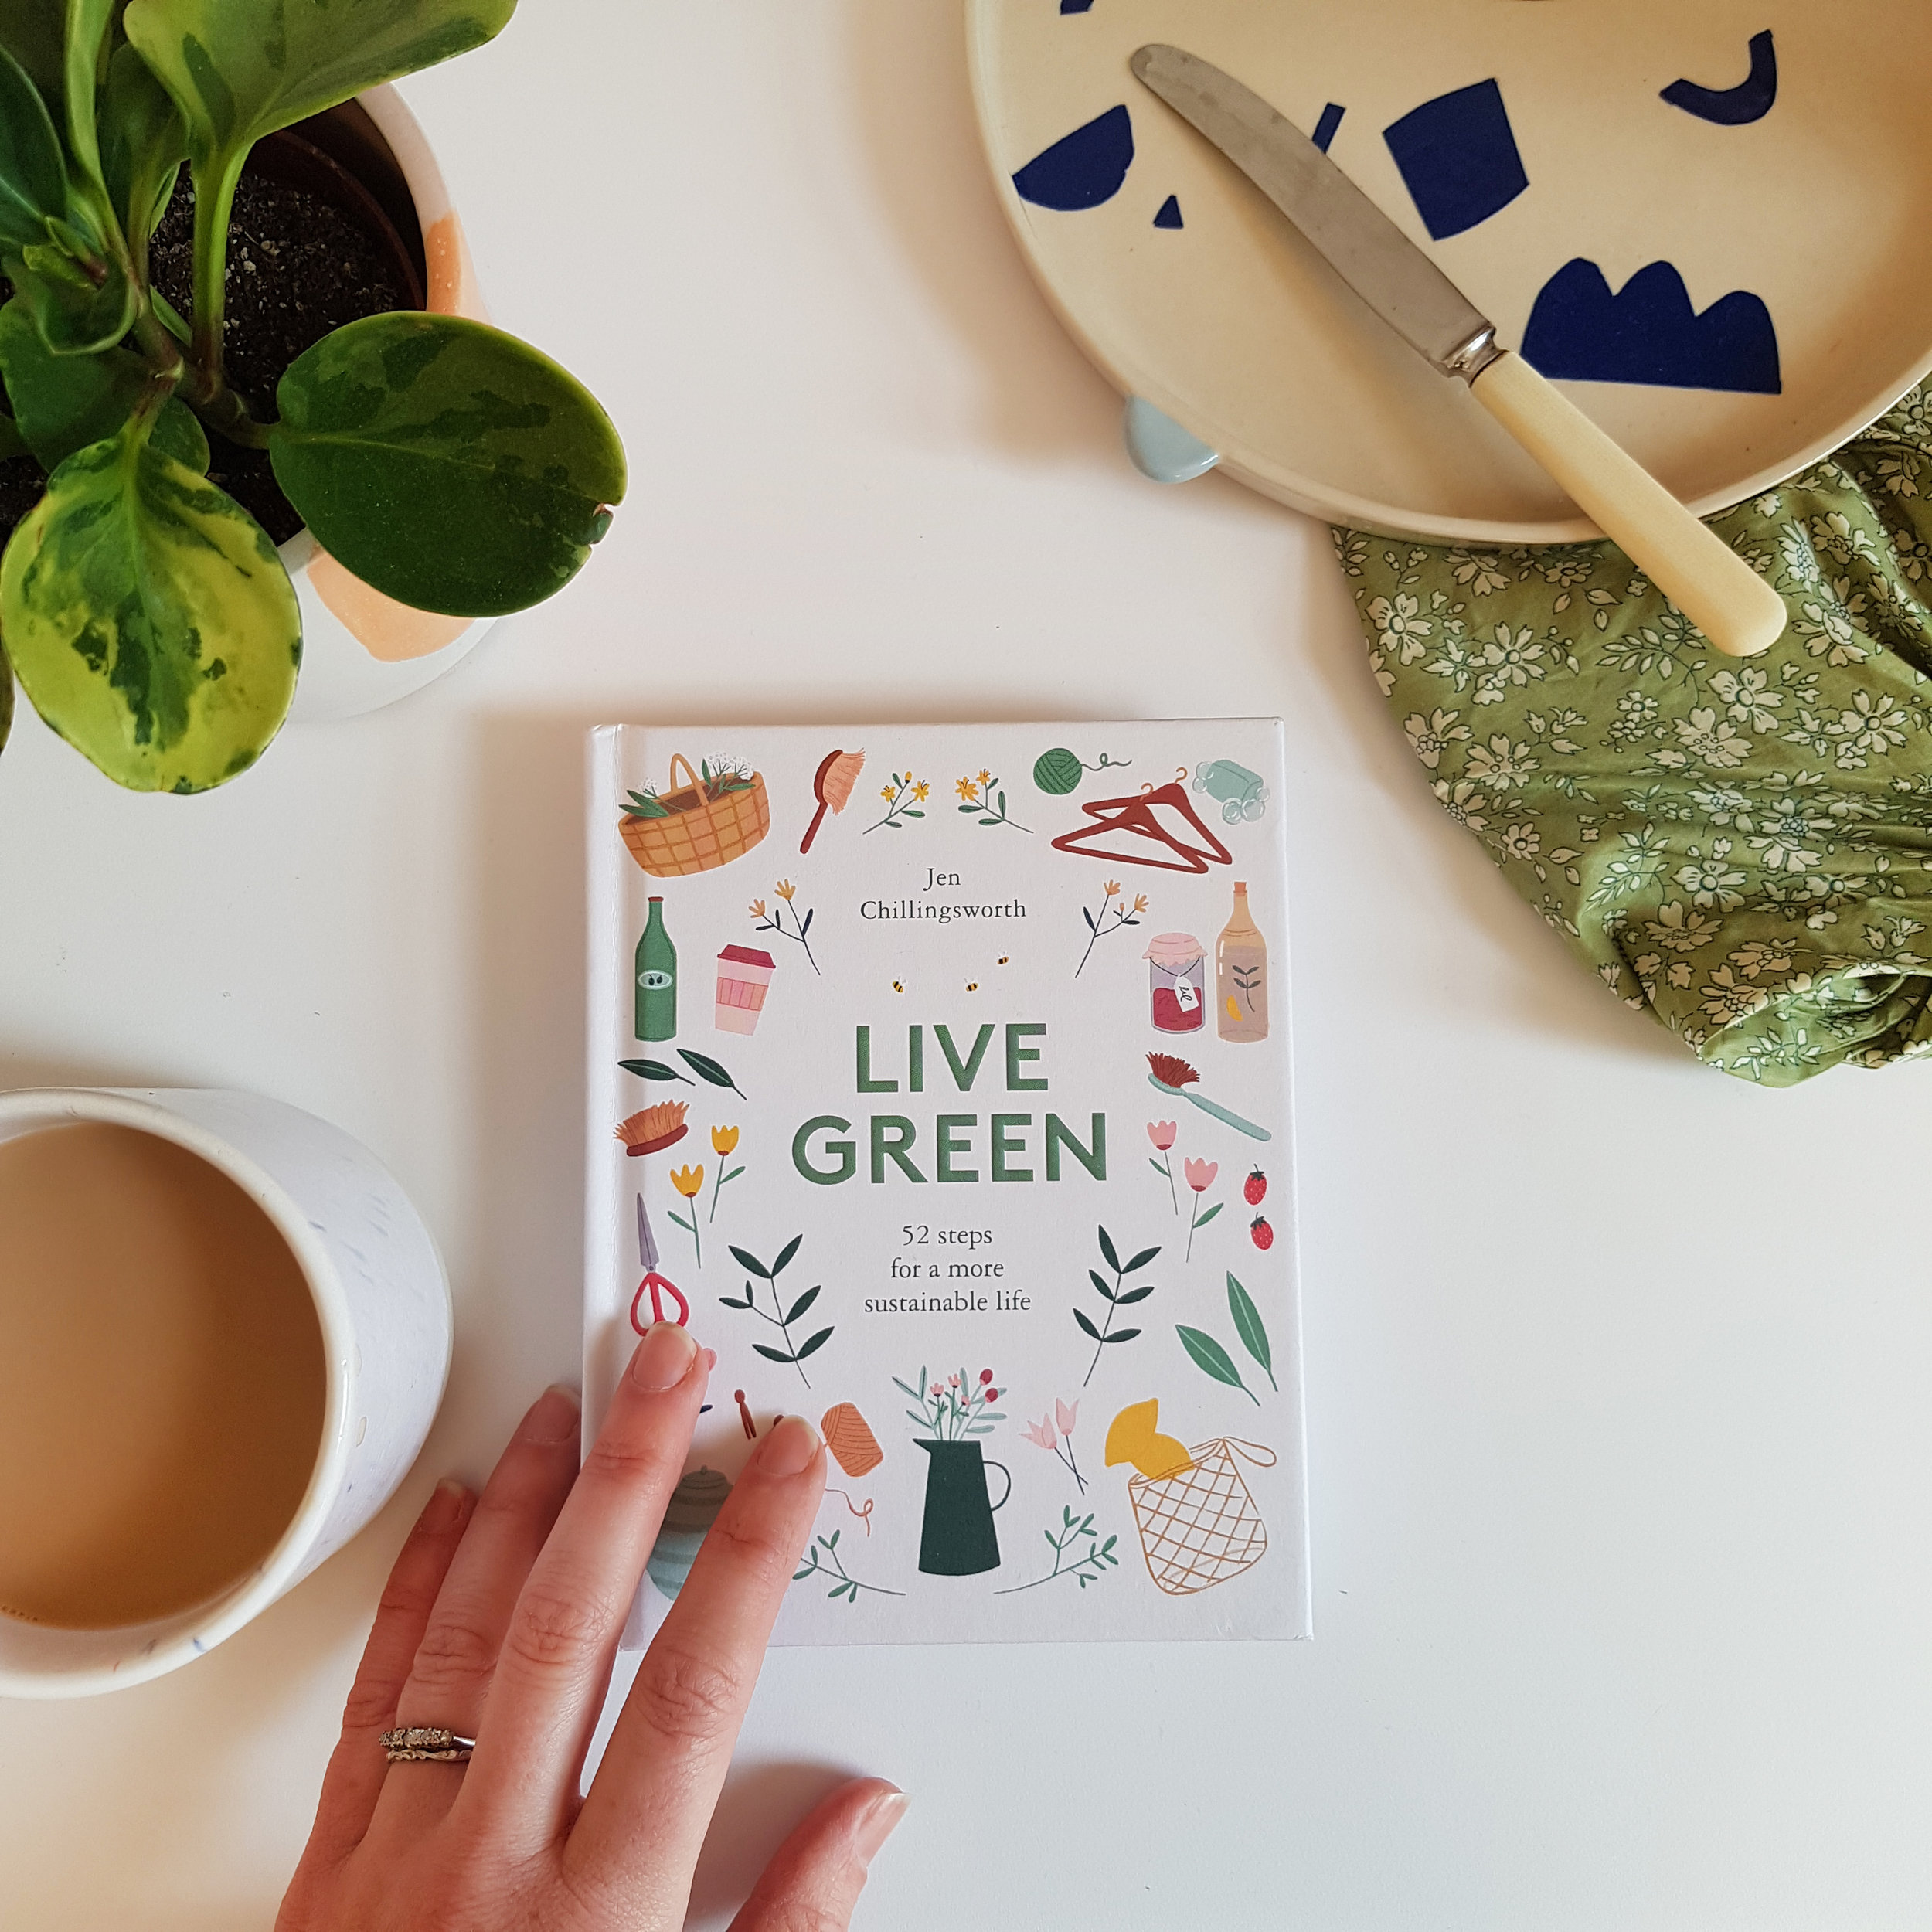 Live Green by Jen Chillingsworth - review by 91 Magazine